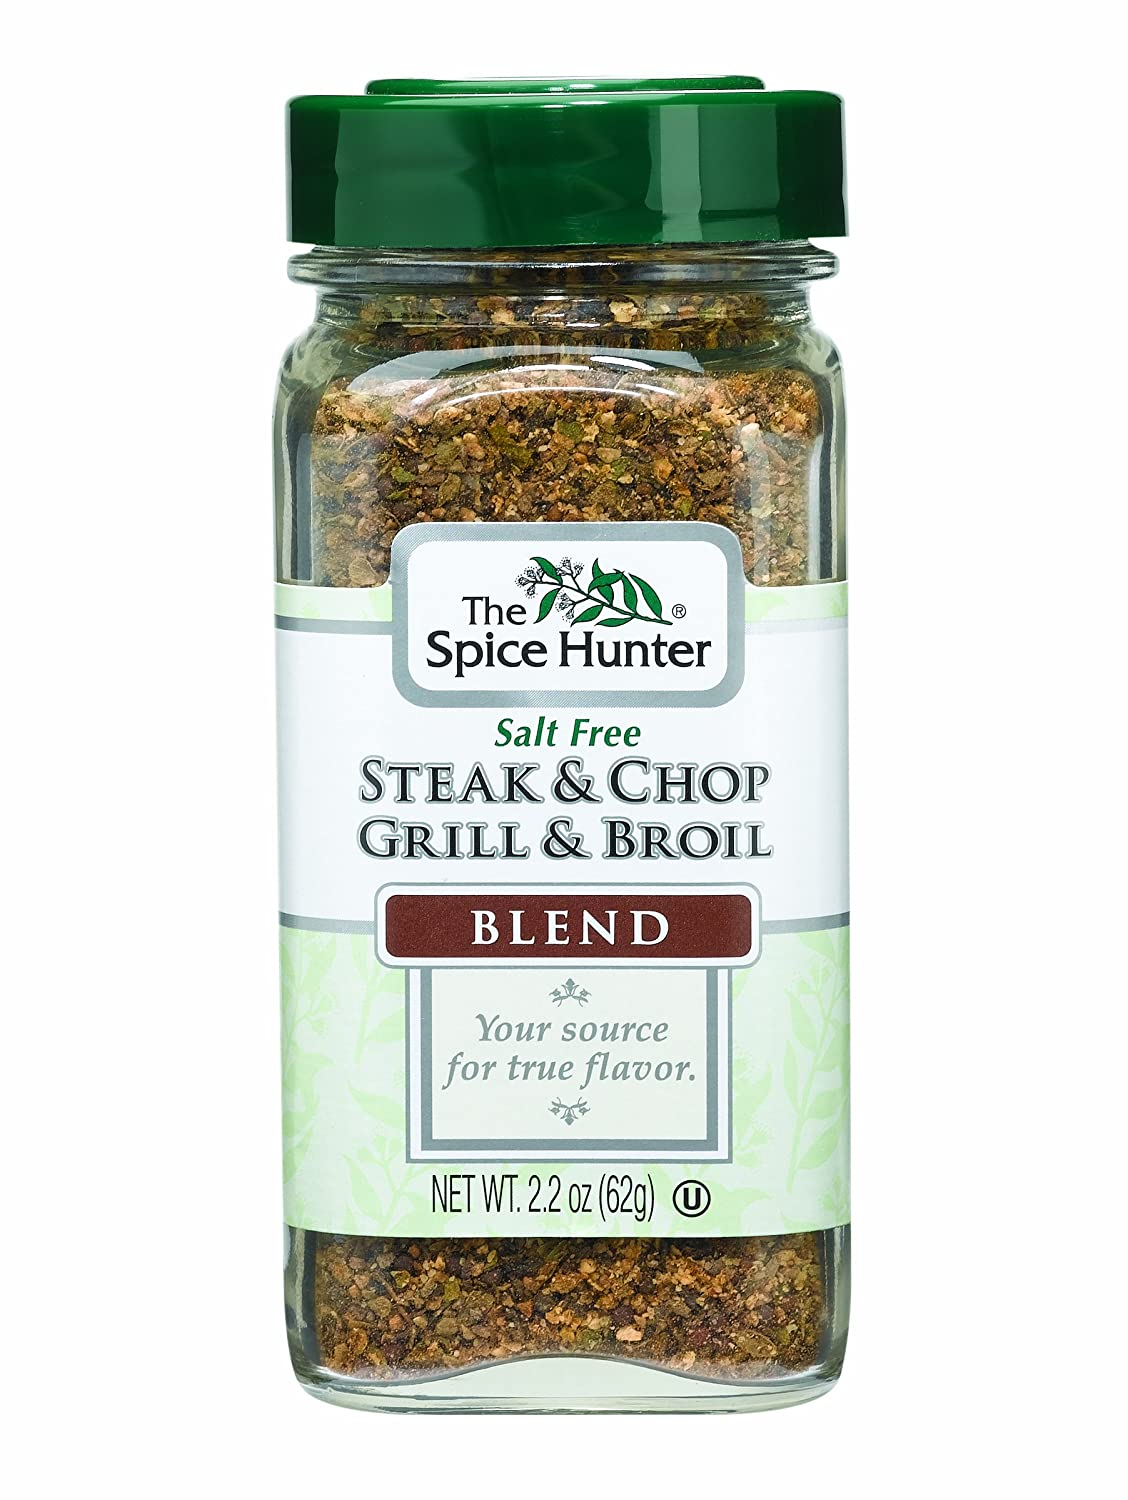 The Spice Hunter Steak & Chop Grill & Broil Blend, 2.2-Ounce Jars (Pack of 6)